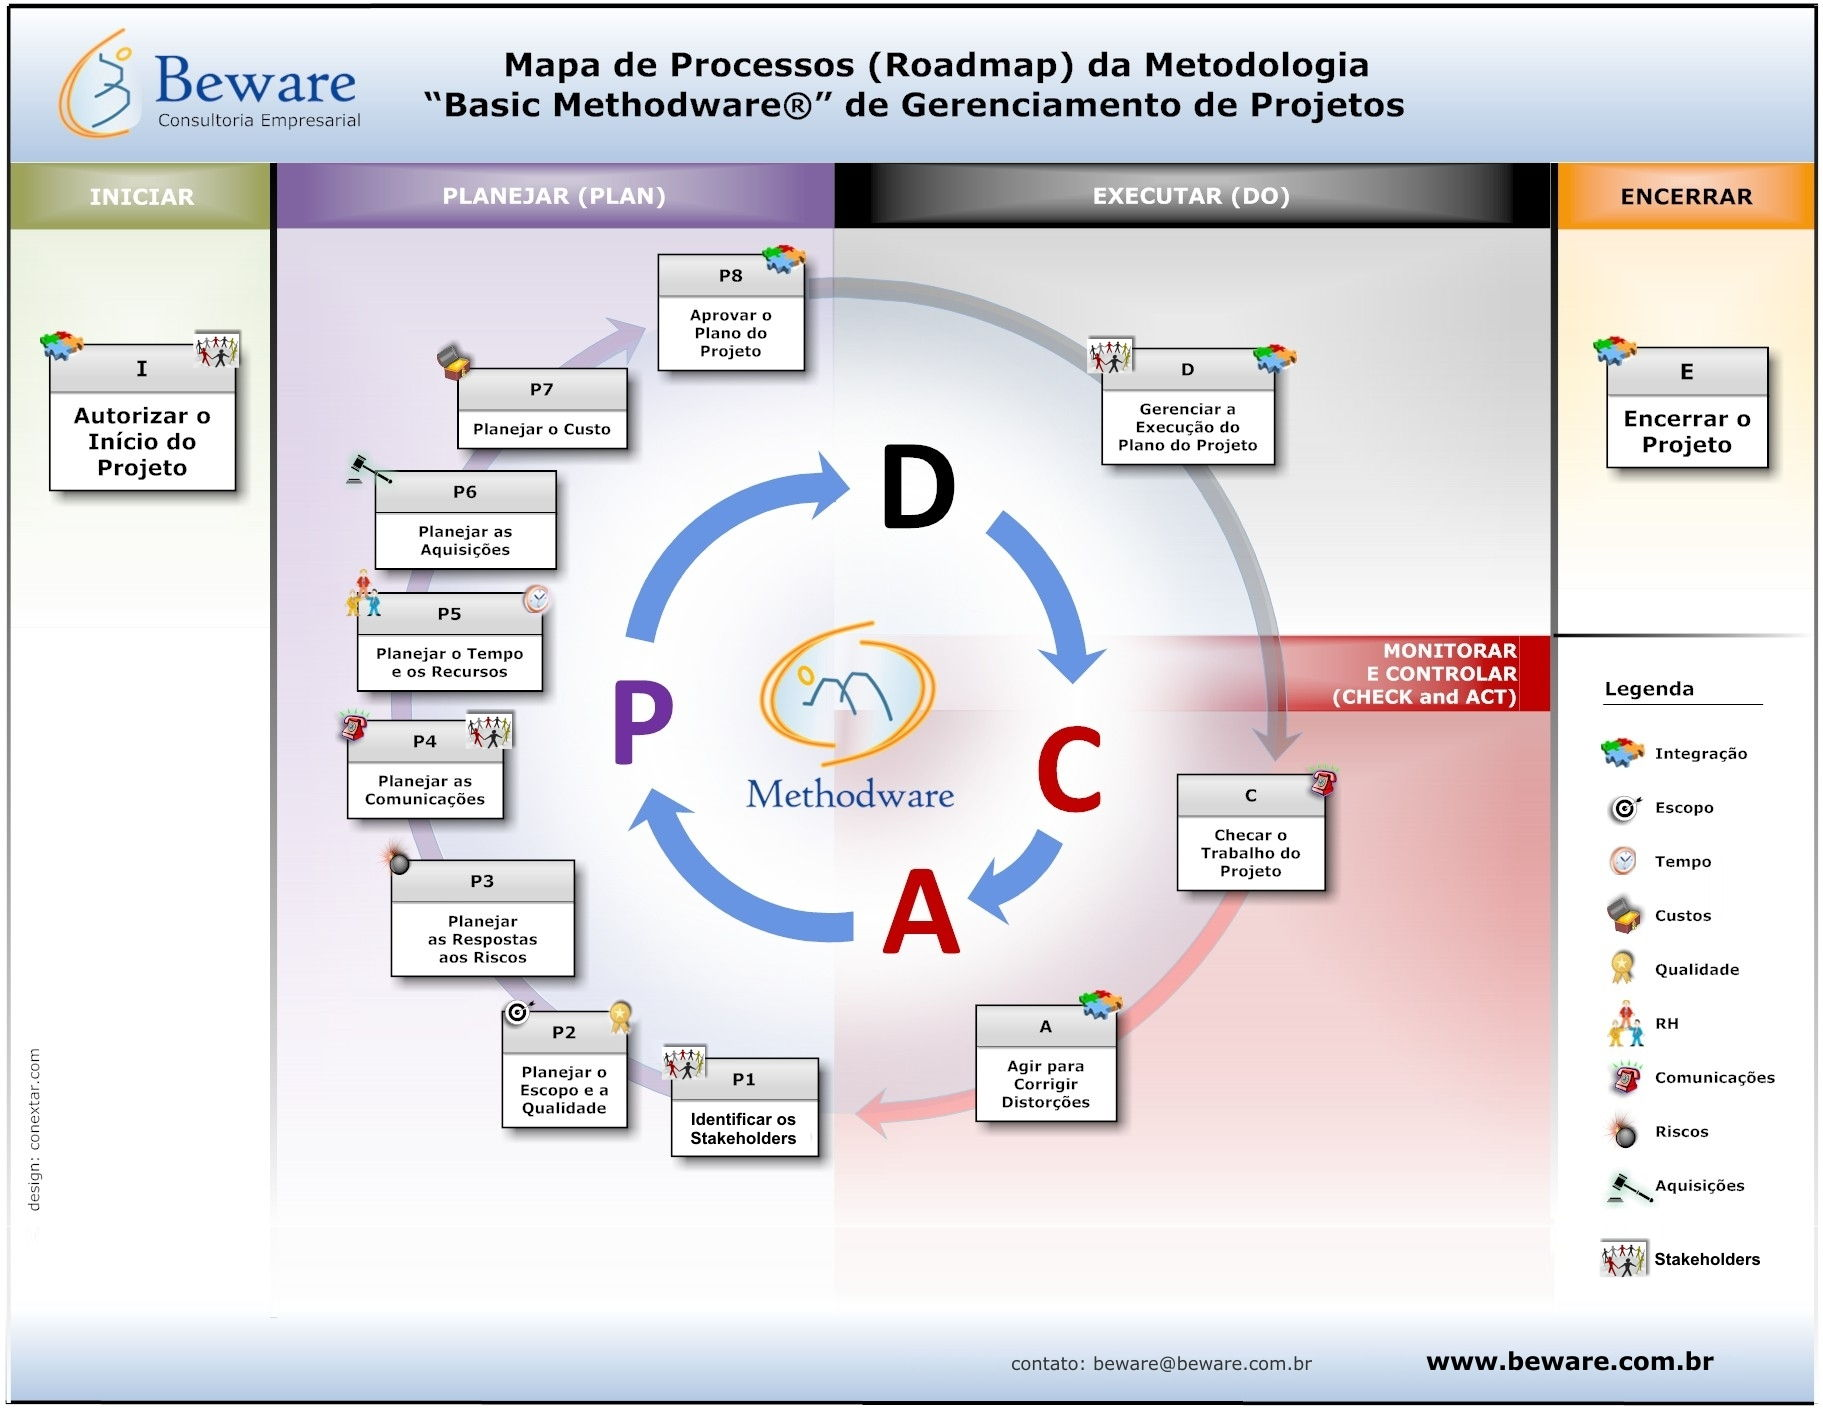 Mapa de Processos (Roadmap) da Basic Methodware - 2013.jpg